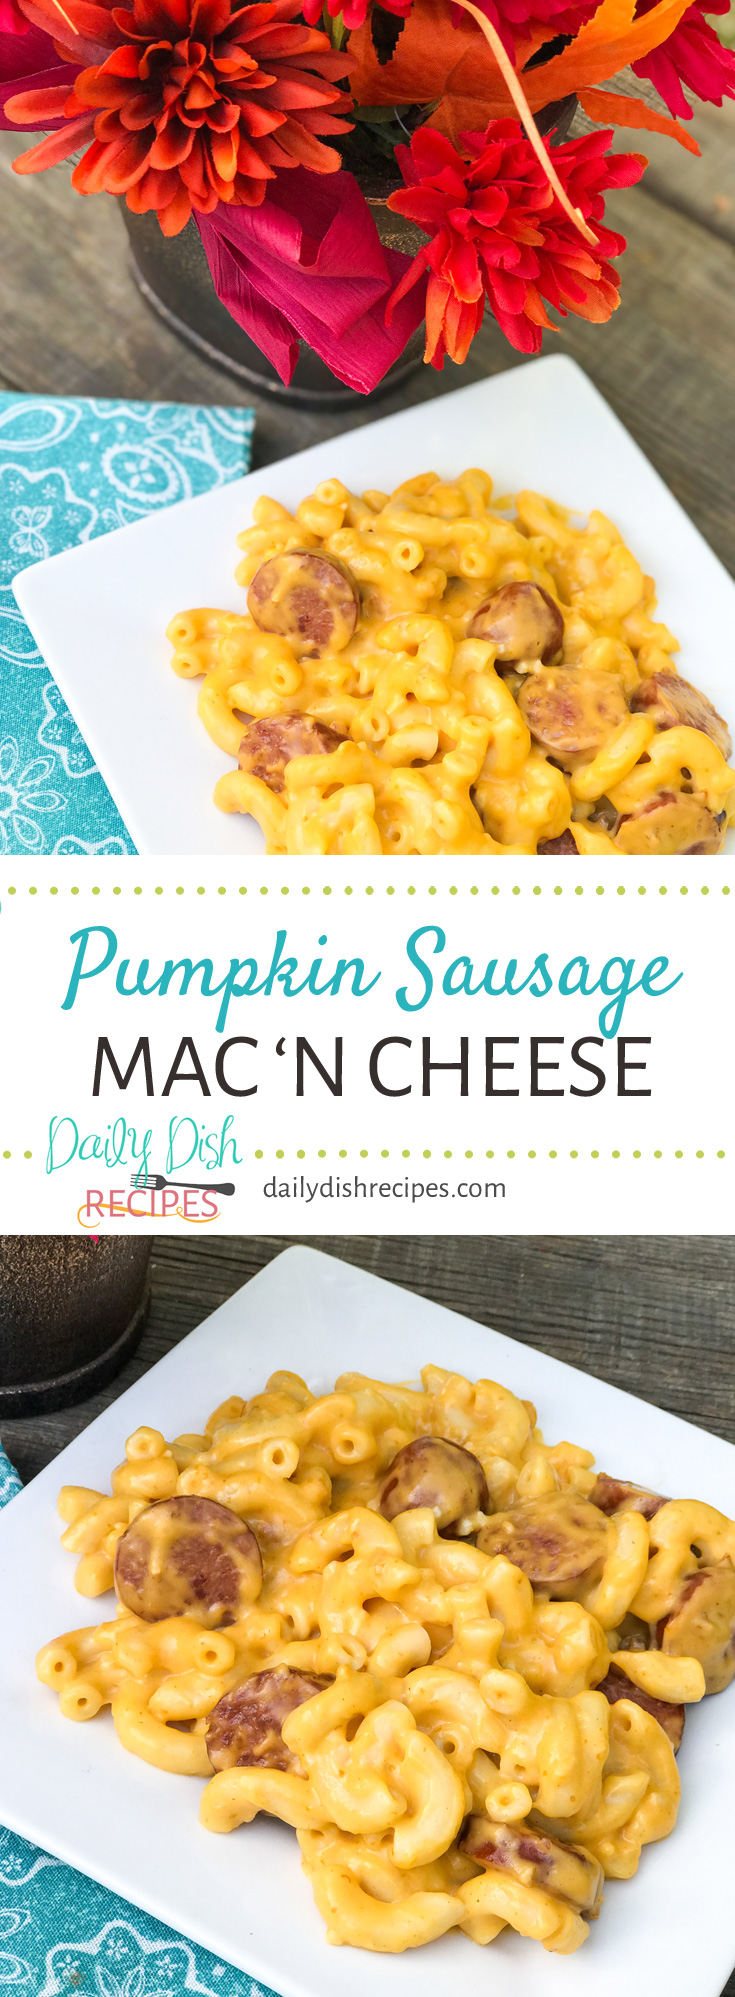 Cheesy, creamyPumpkin Sausage Mac and Cheese has the smooth, flavorful addition of pumpkin, combined with the savory cheesy flavor of a traditional Mac and Cheese with savory sausage slices.